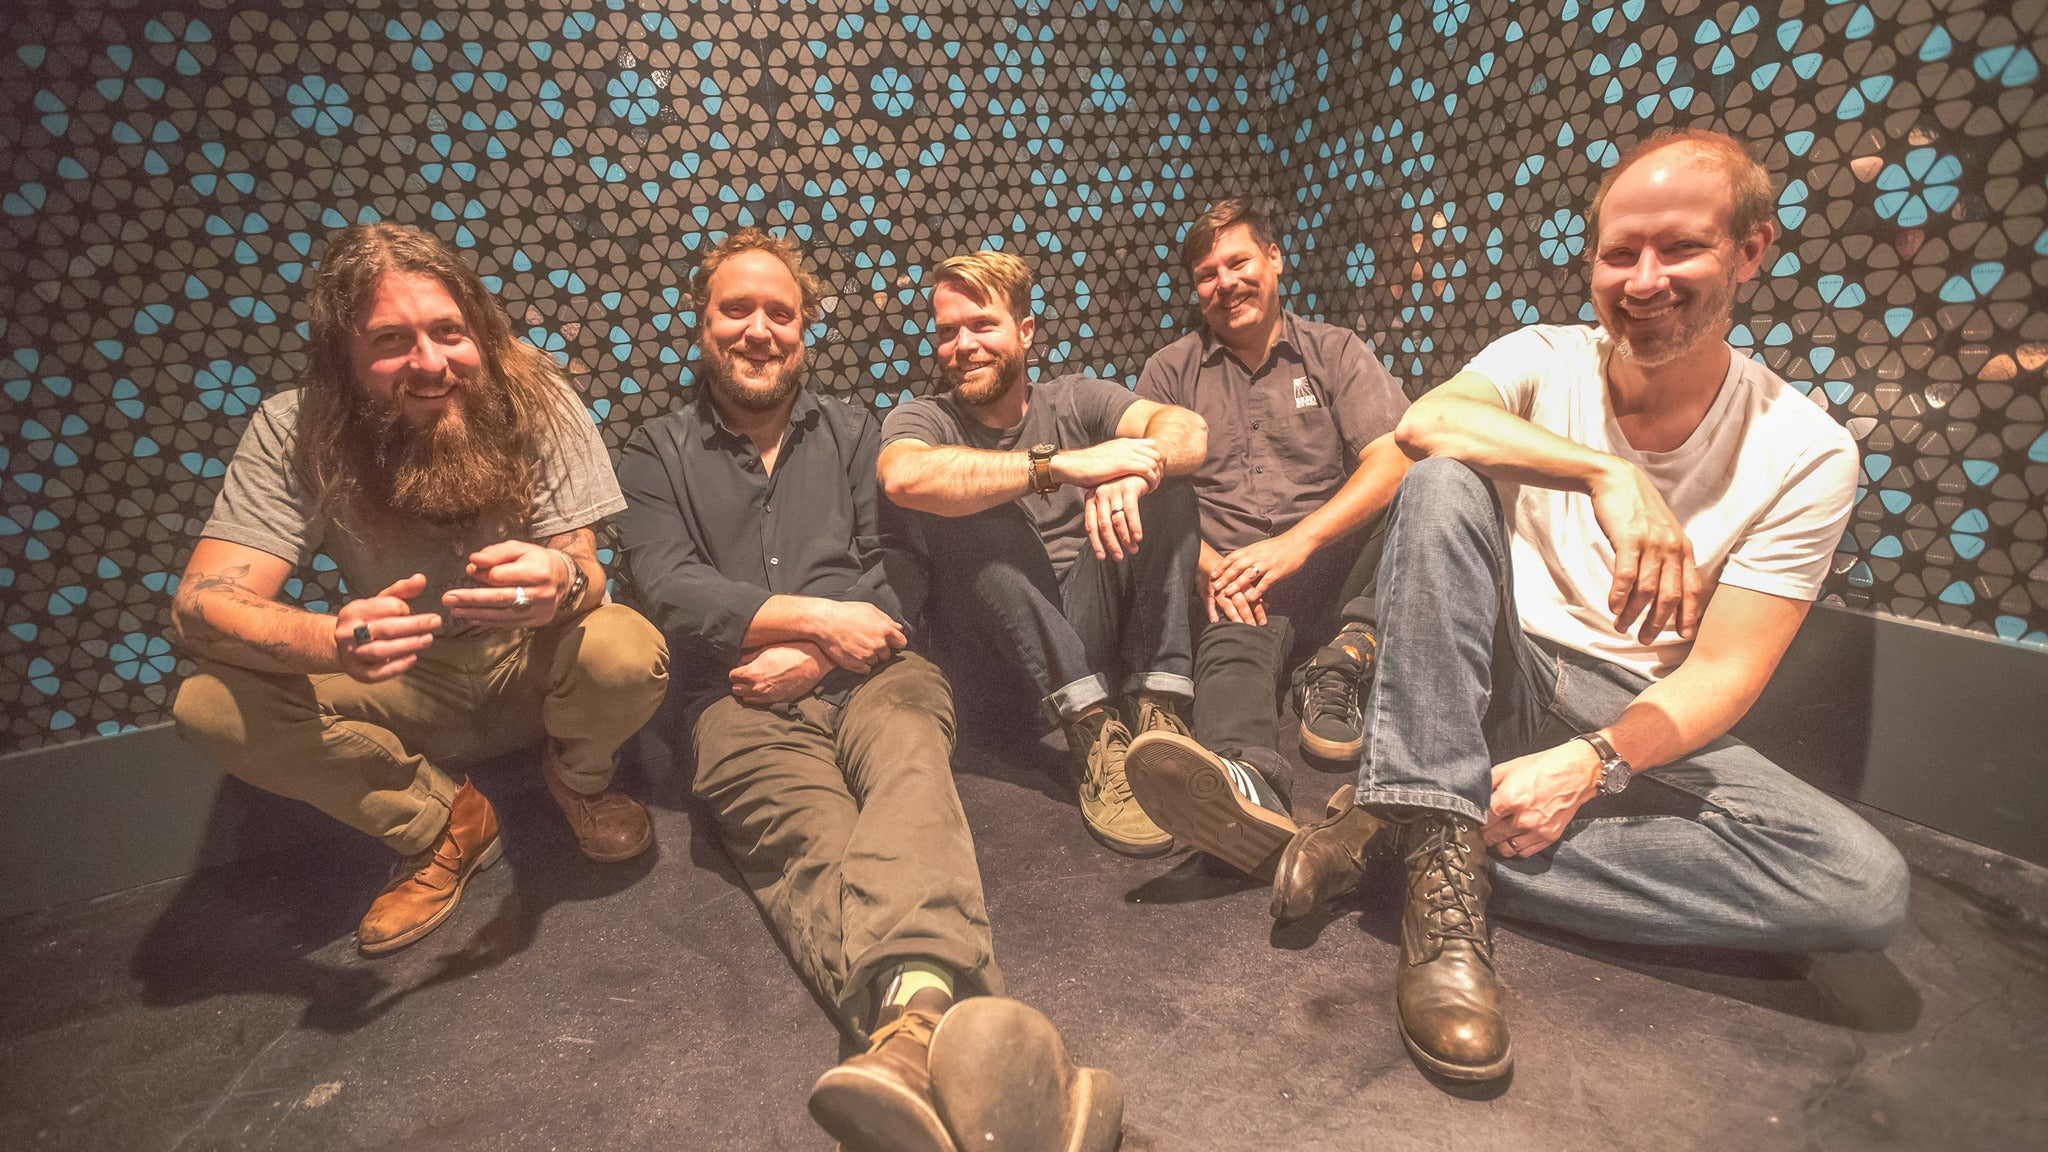 Greensky Bluegrass at Red Rocks Amphitheatre